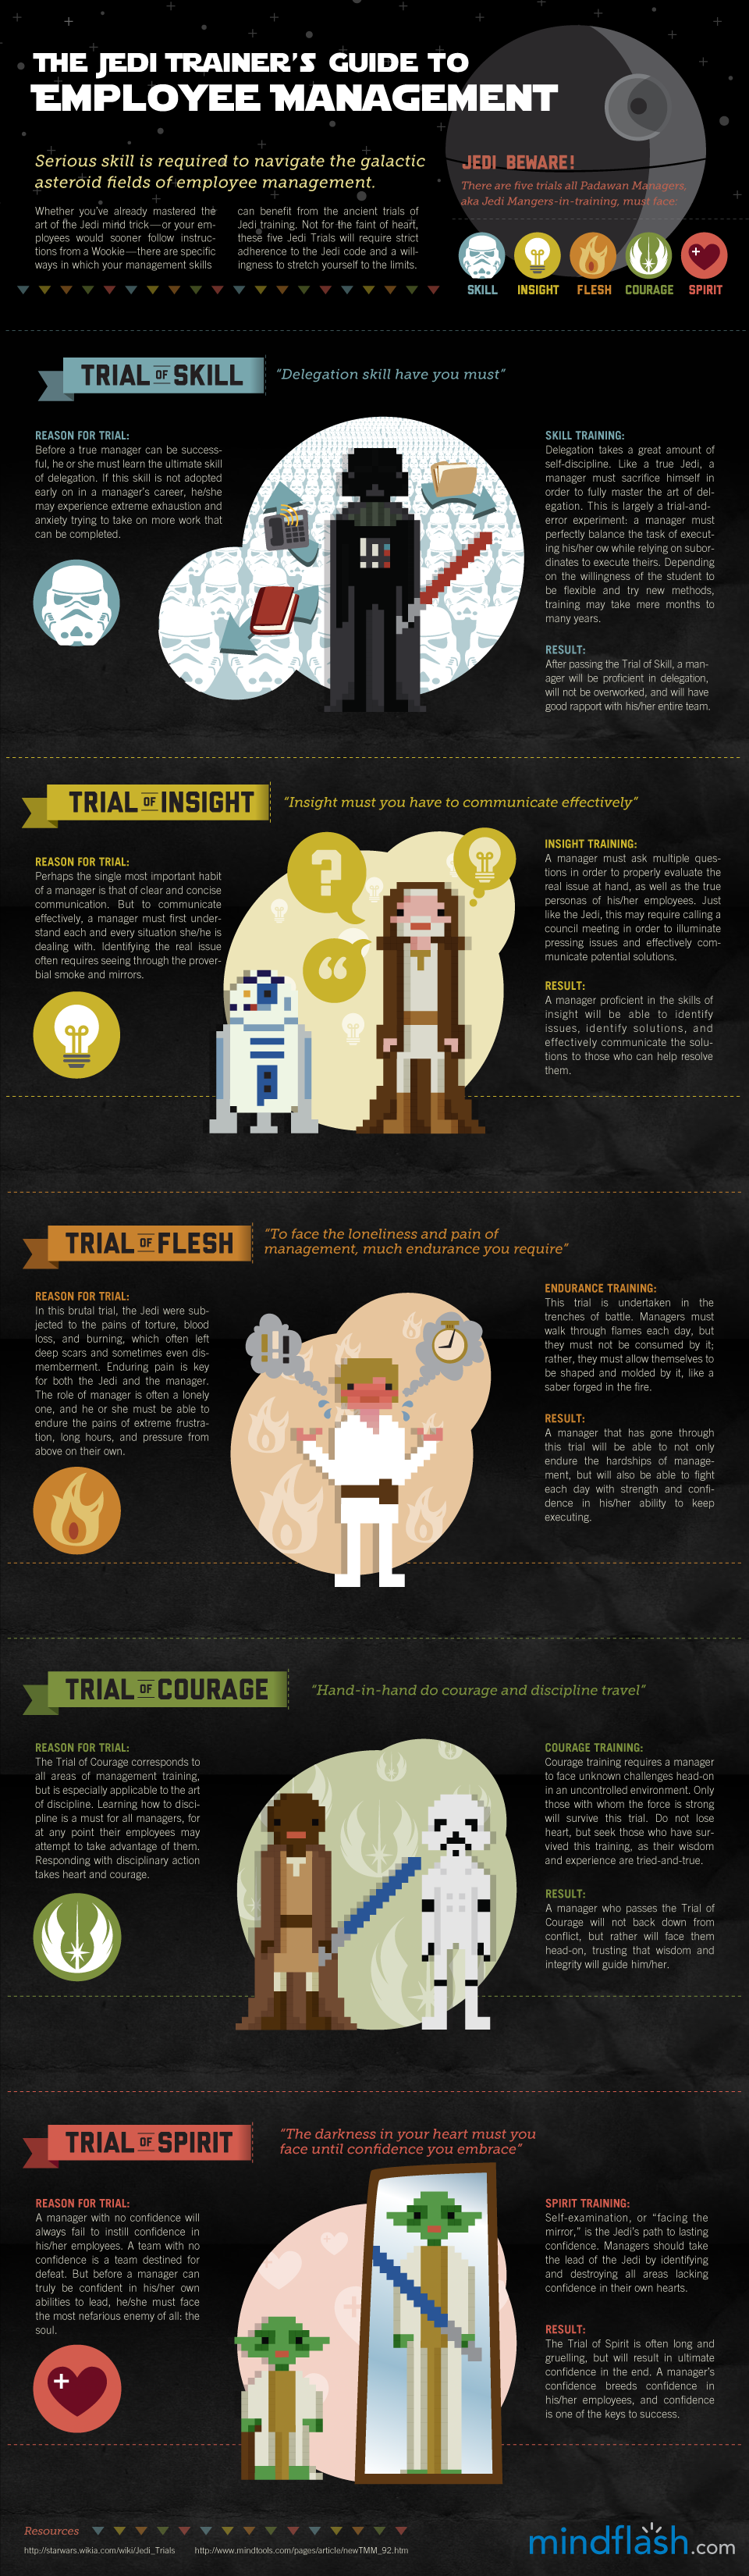 The Jedi Trainer's Guide To Employee Management